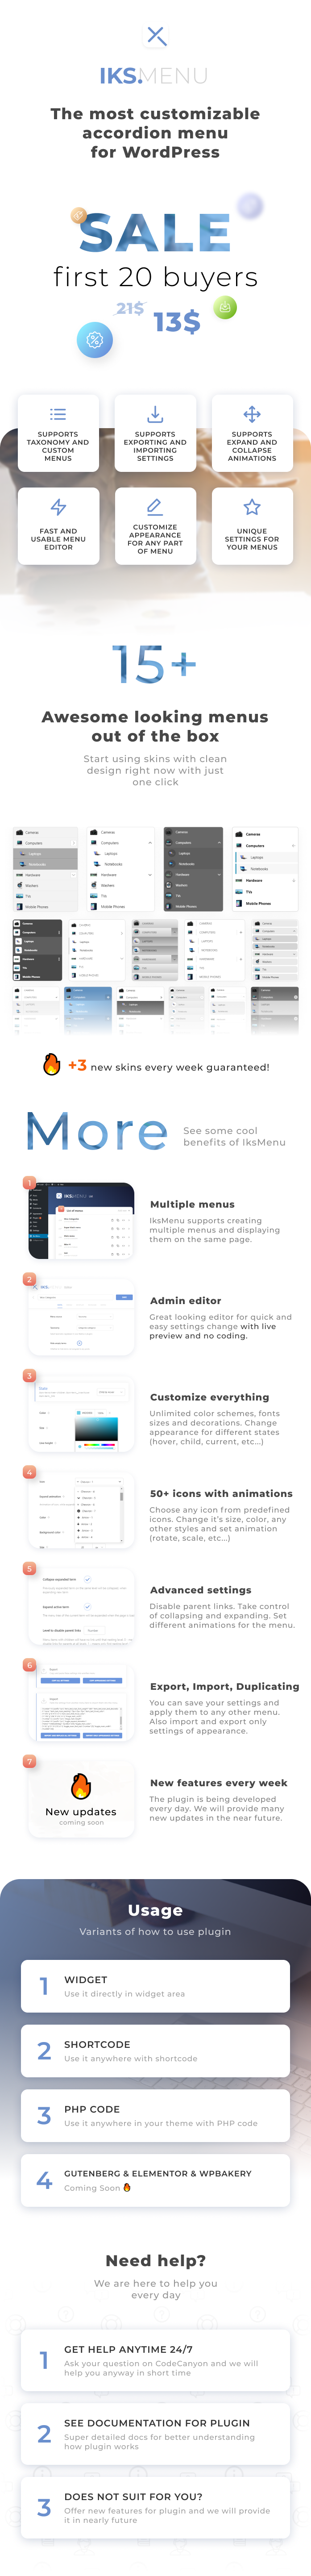 Iks Menu - Super Customizable Accordion Menu for WordPress - 1